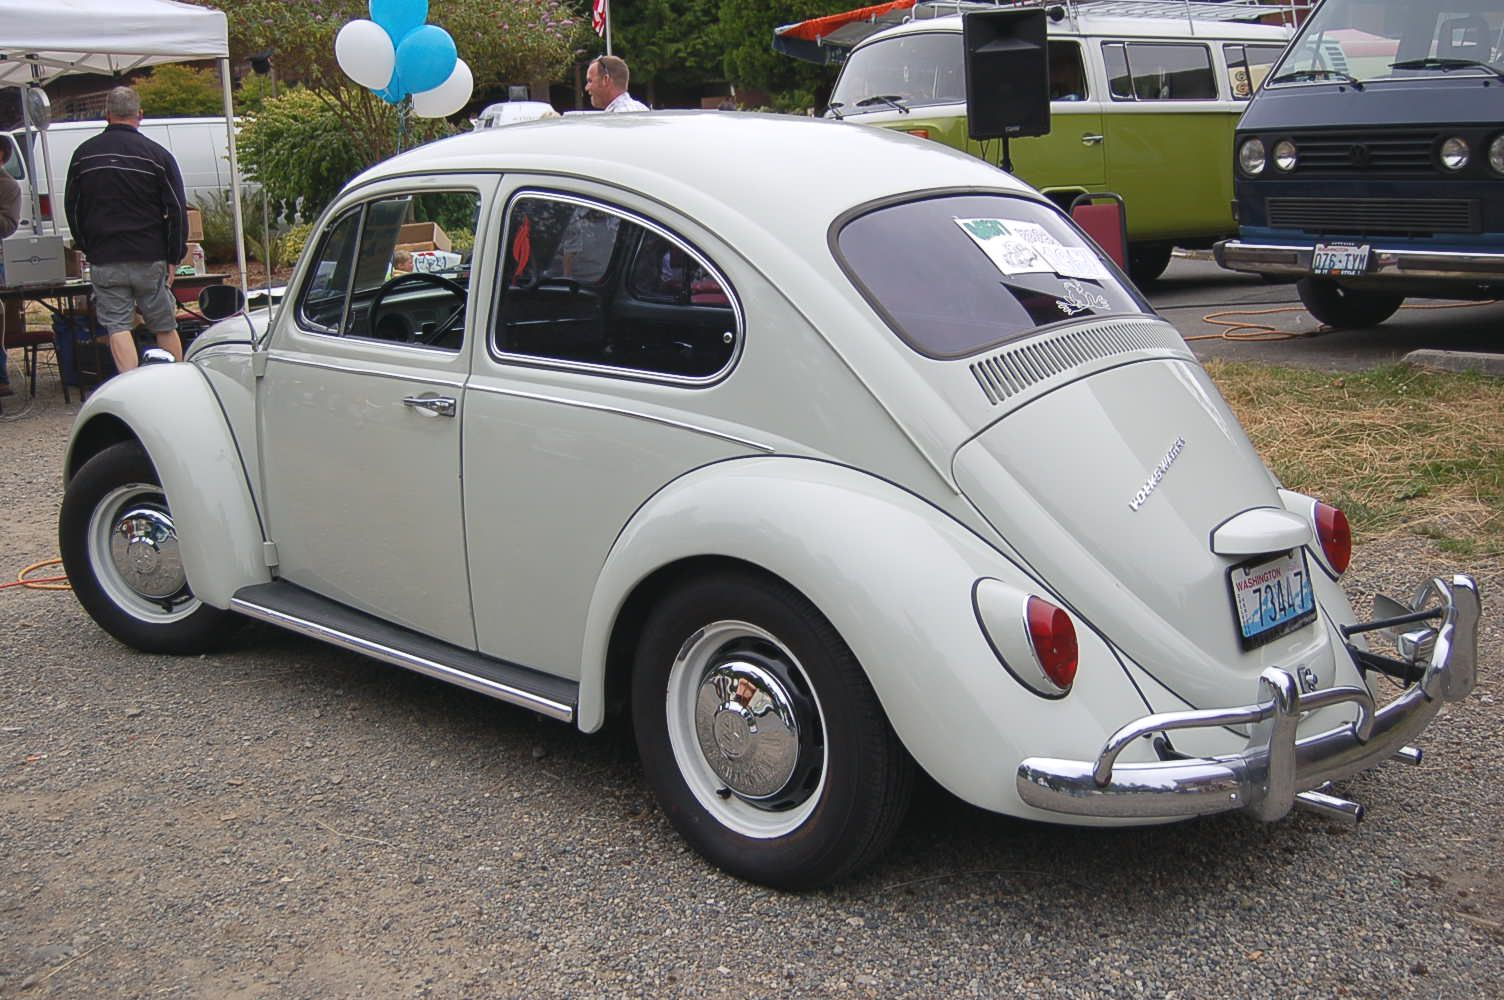 vw green market bug thursday pin beetles convertible beetle a one find pink in for the i and of these could volkswagen wish